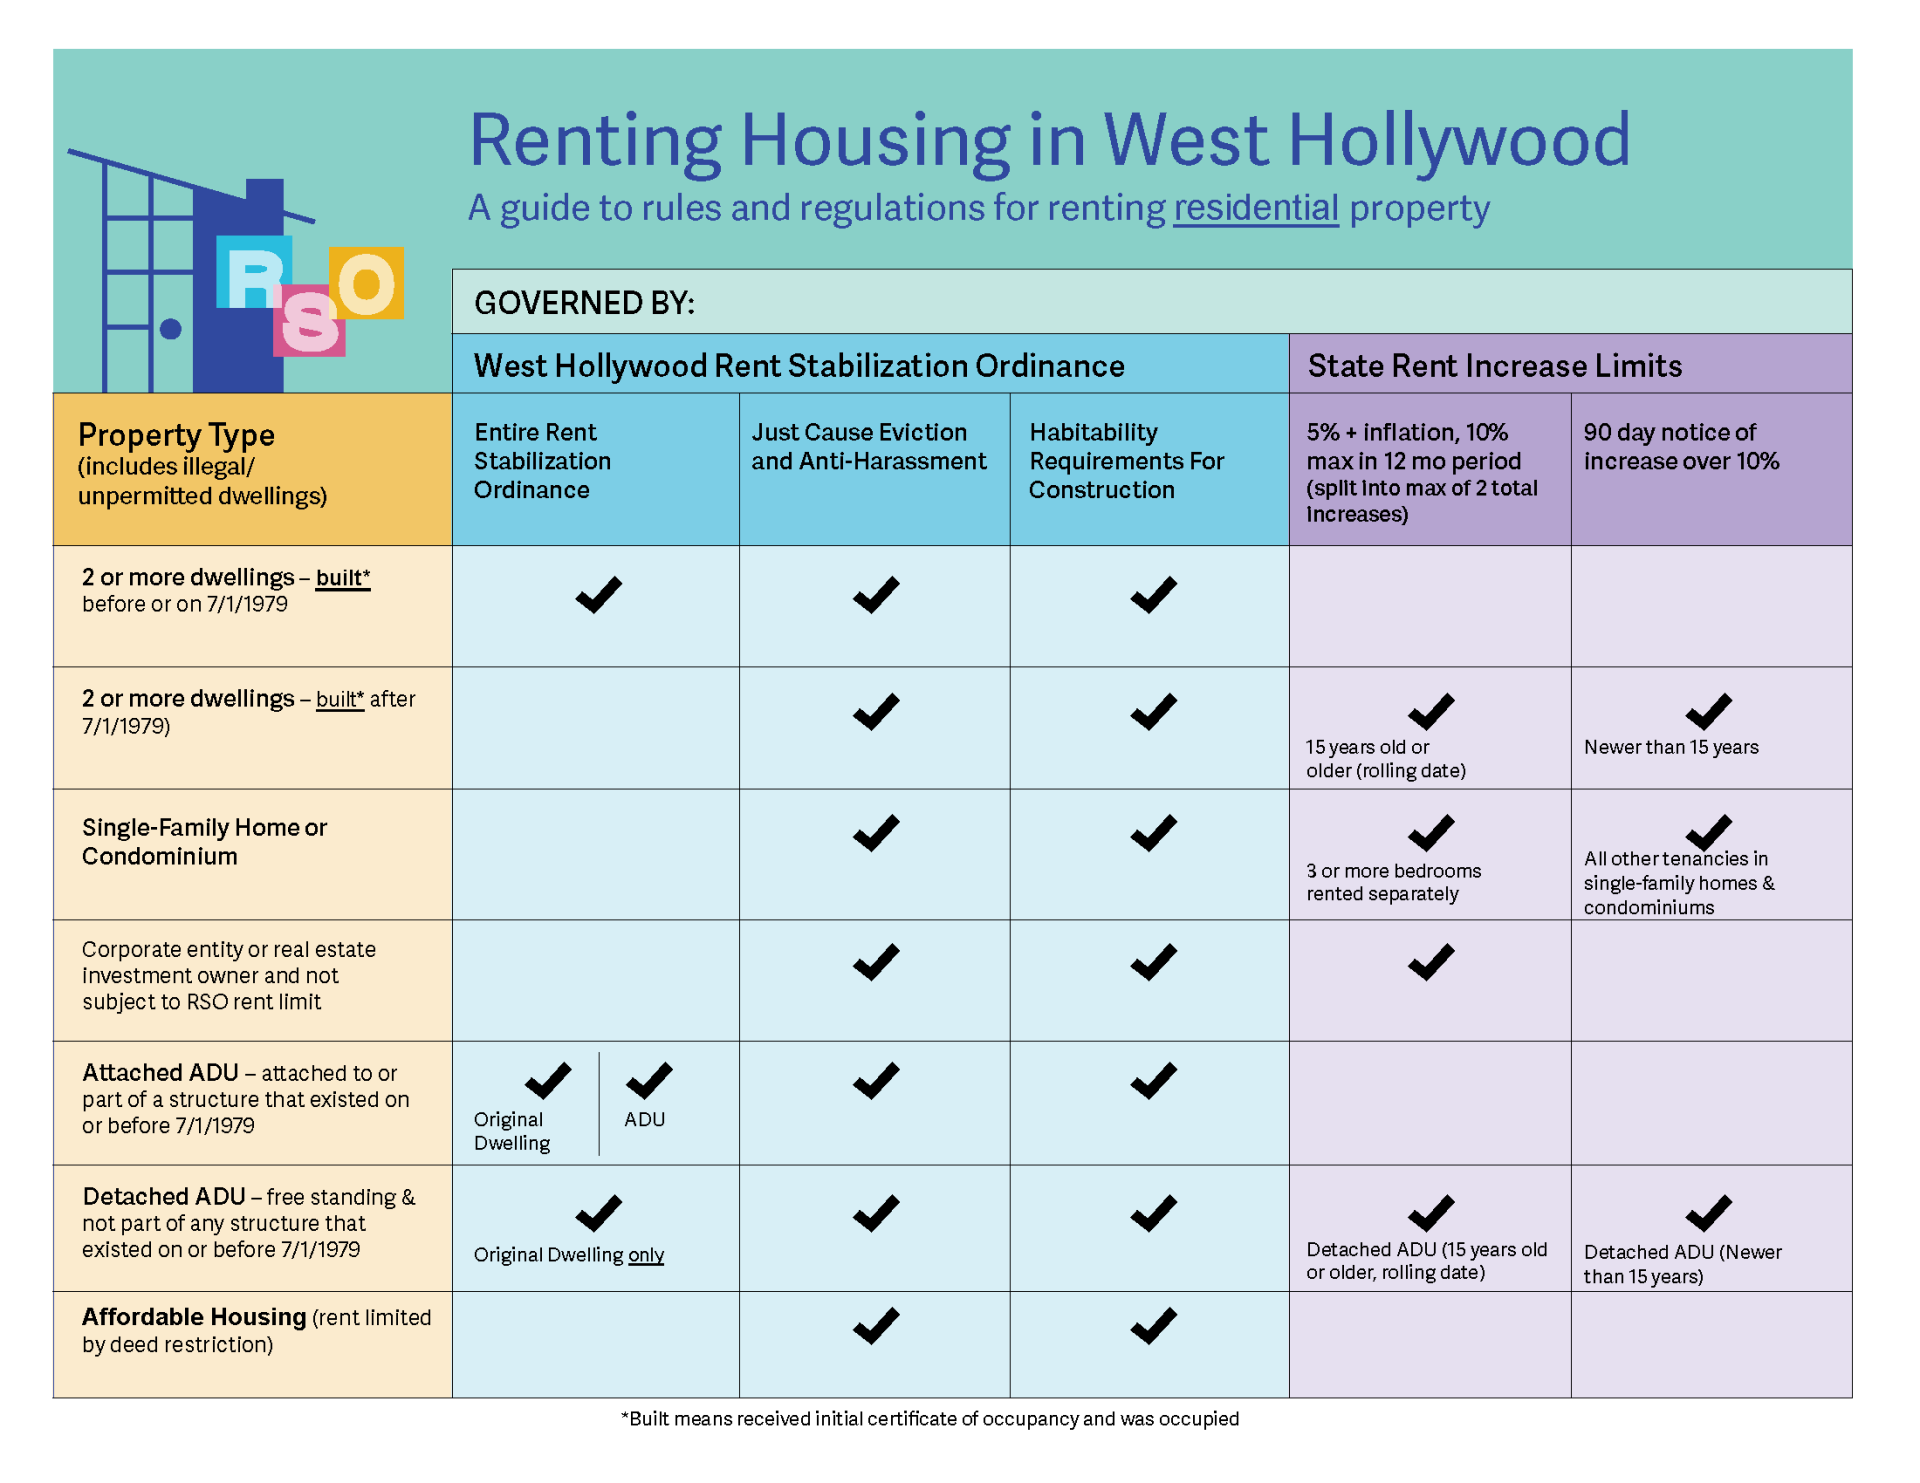 HANDOUT - Renting Housing in West Hollywood